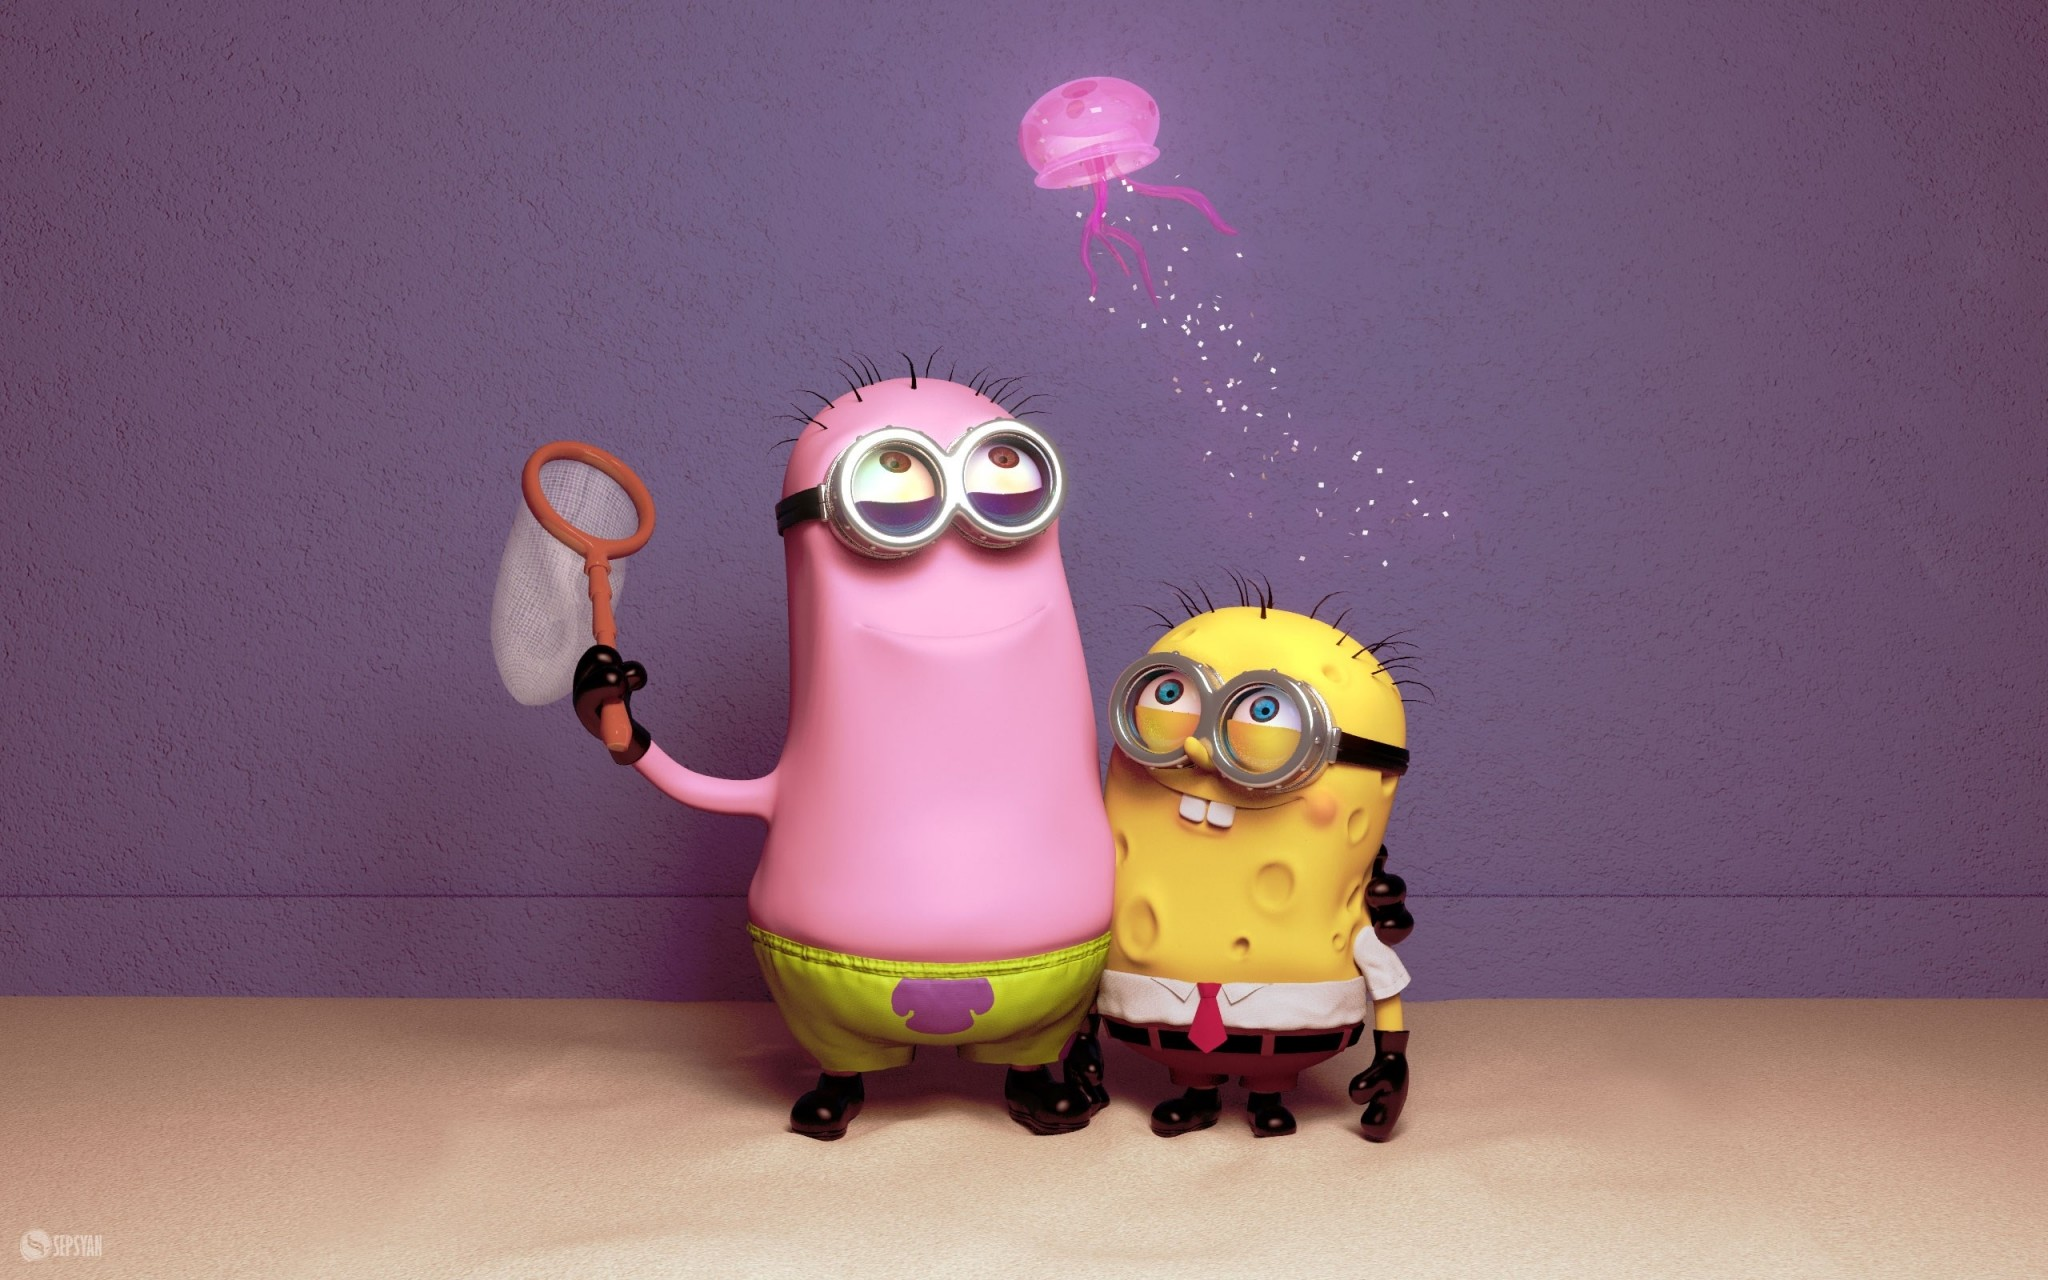 2048x1280 minion wallpaper desktop